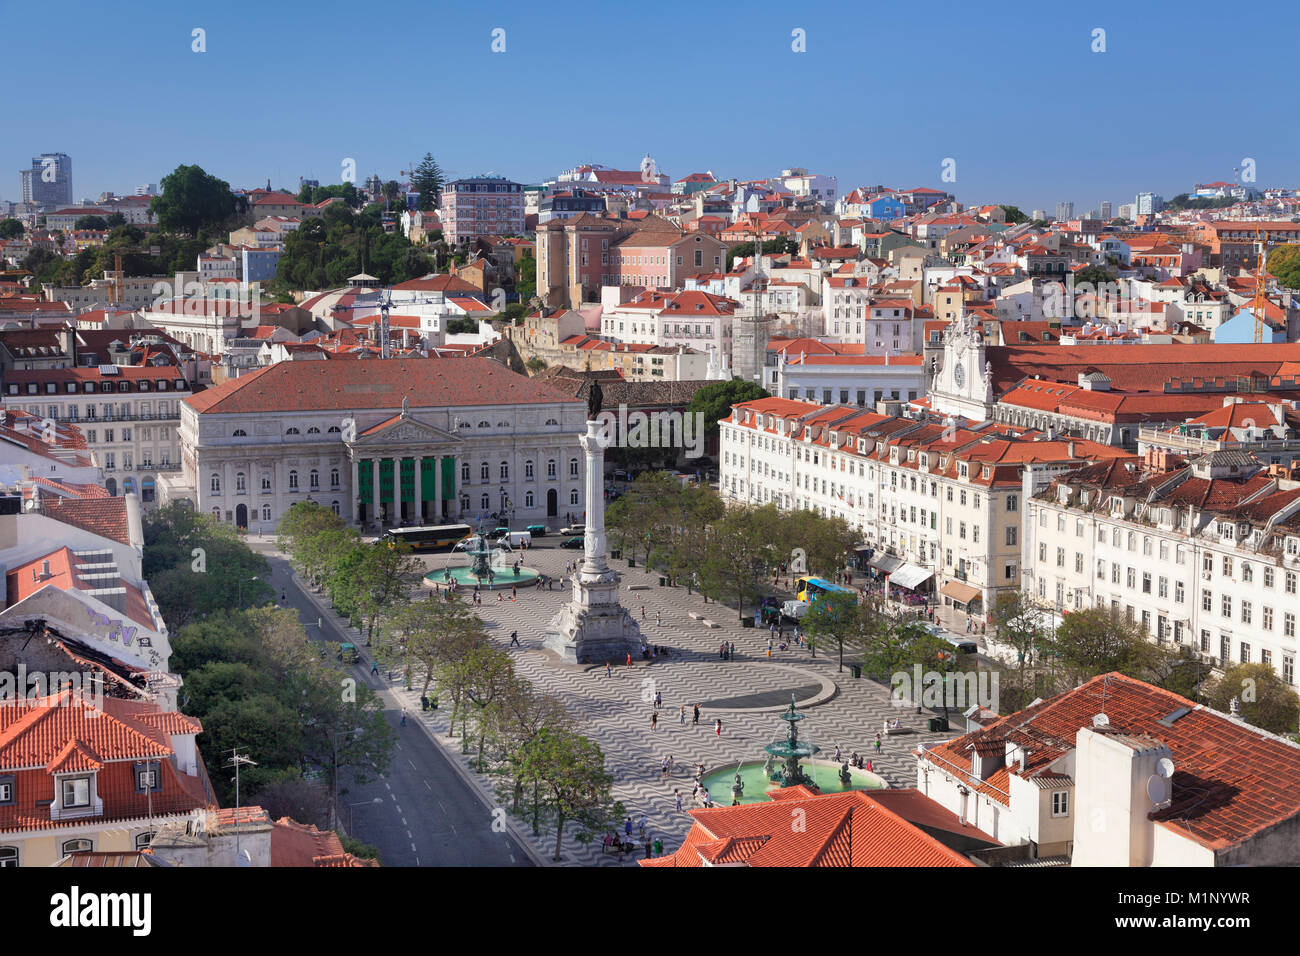 Rossio, Praça Dom Pedro IV, le Théâtre National Dona Maria II, la Baixa, Lisbonne, Portugal, Europe Photo Stock